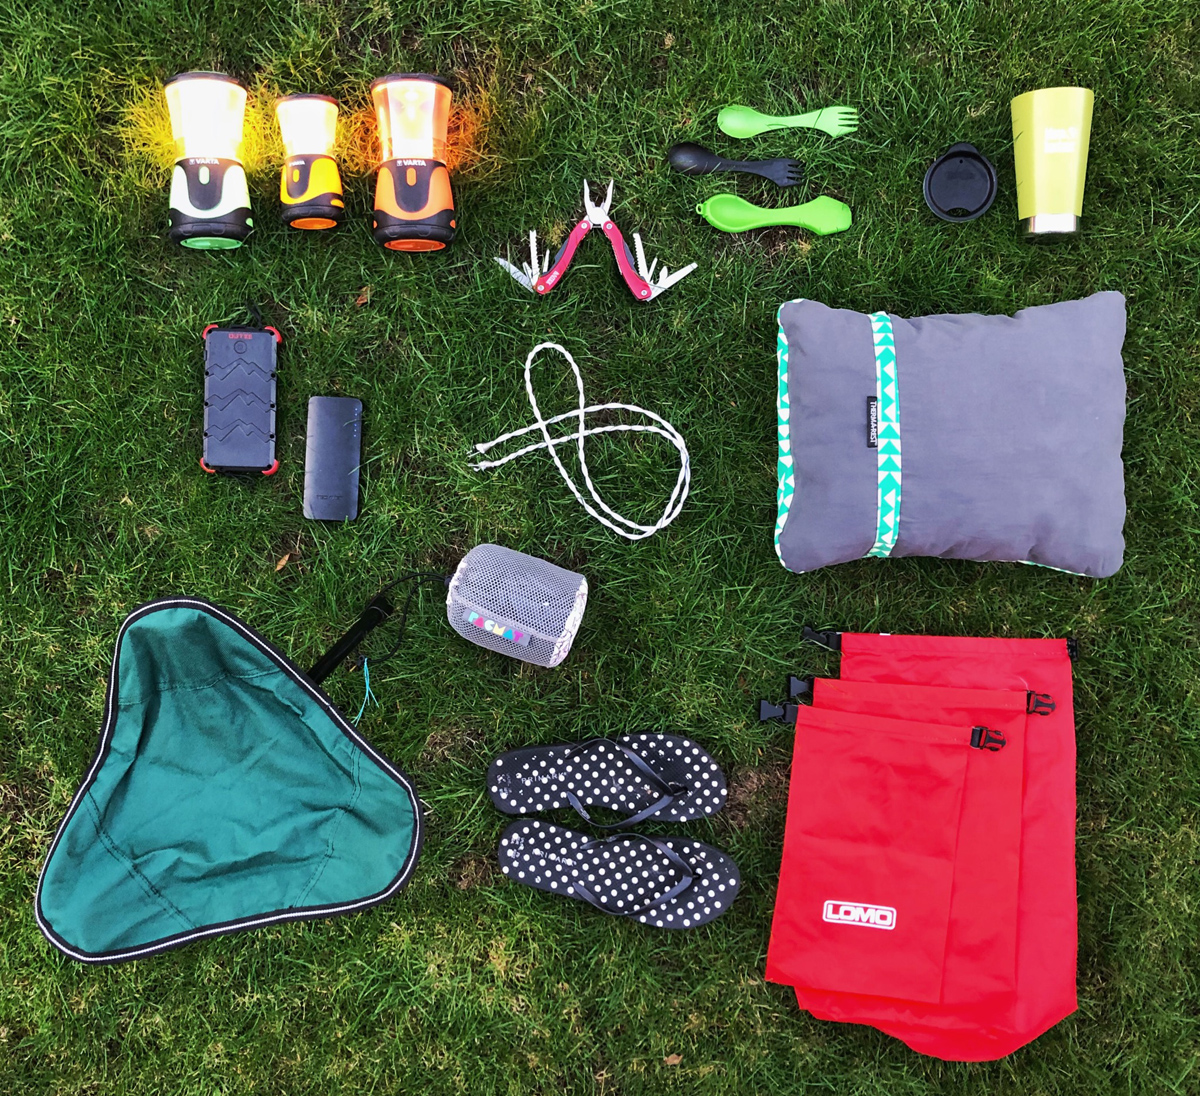 ELEVEN USEFUL CAMPING BITS AND BOBS